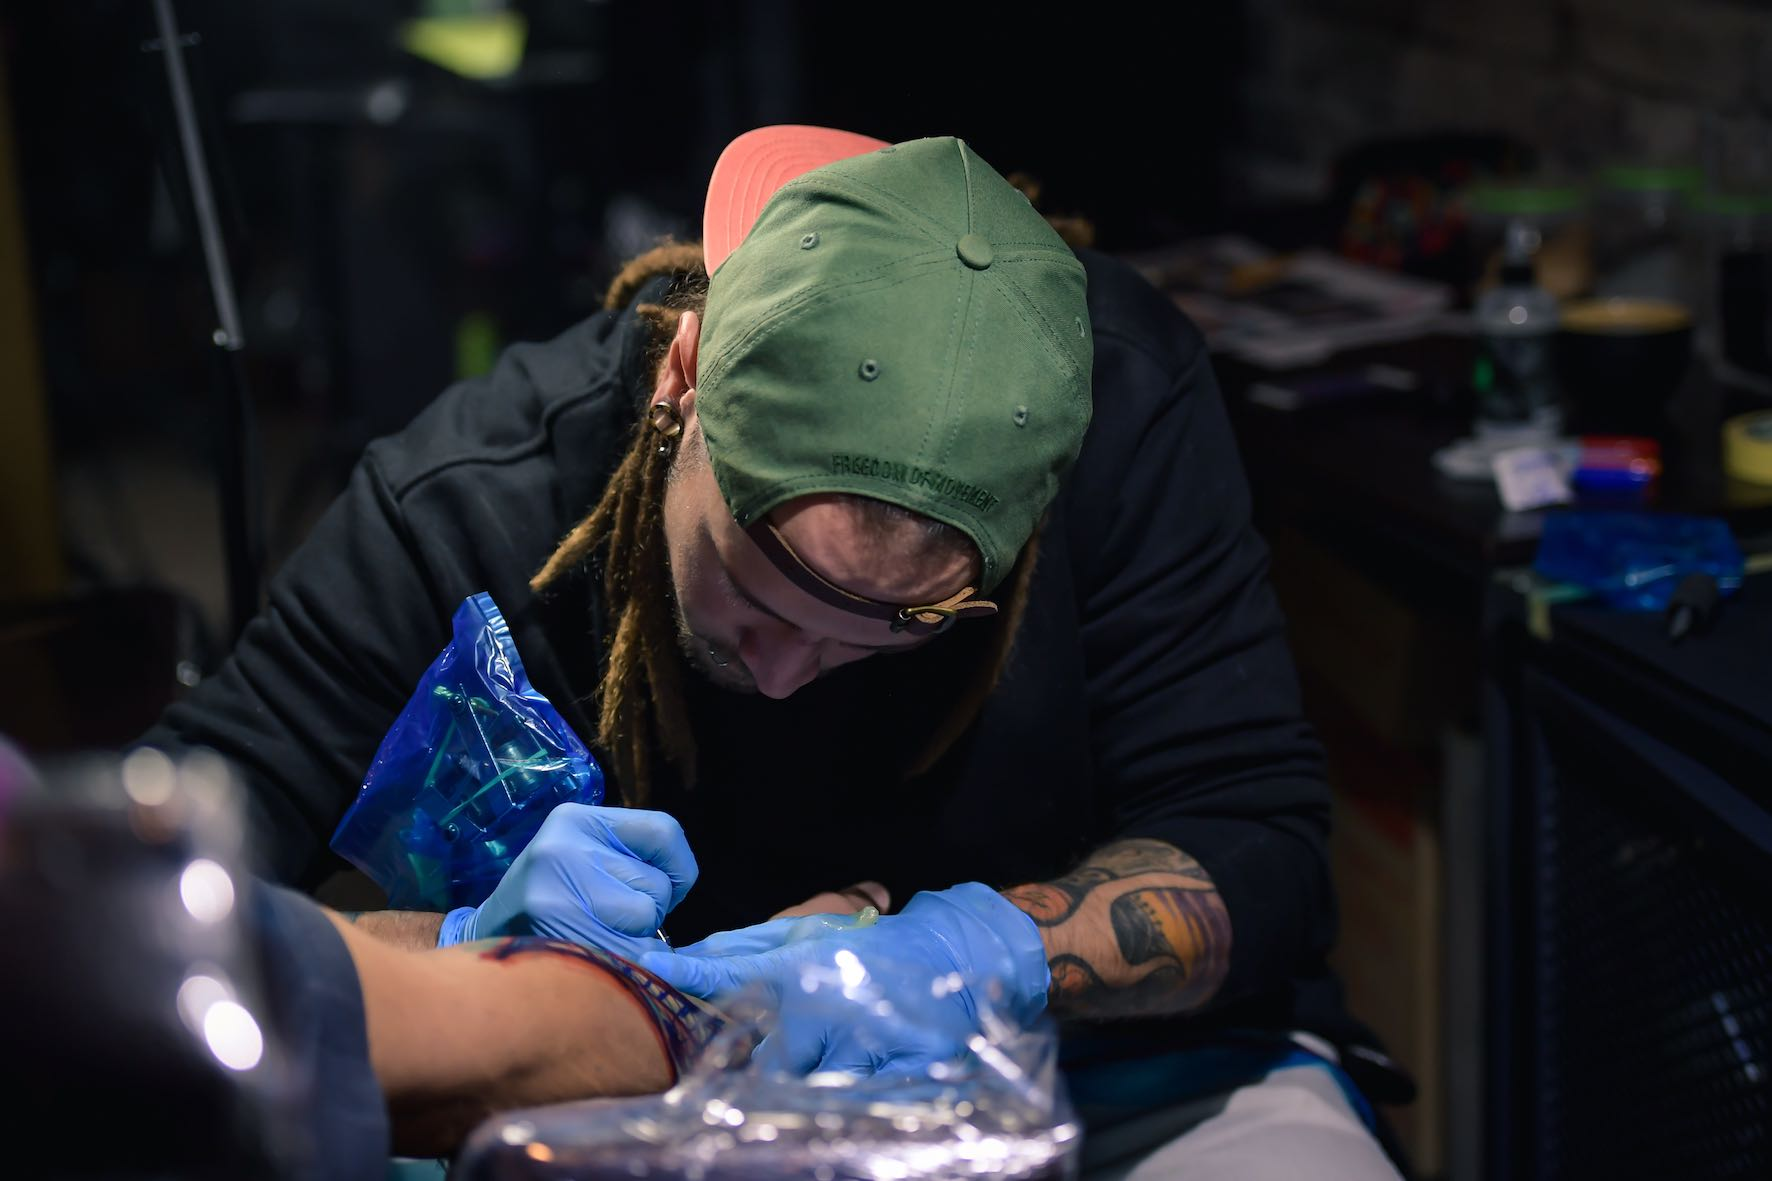 Sean Pengilly working out of Sally Mustang Tattoos